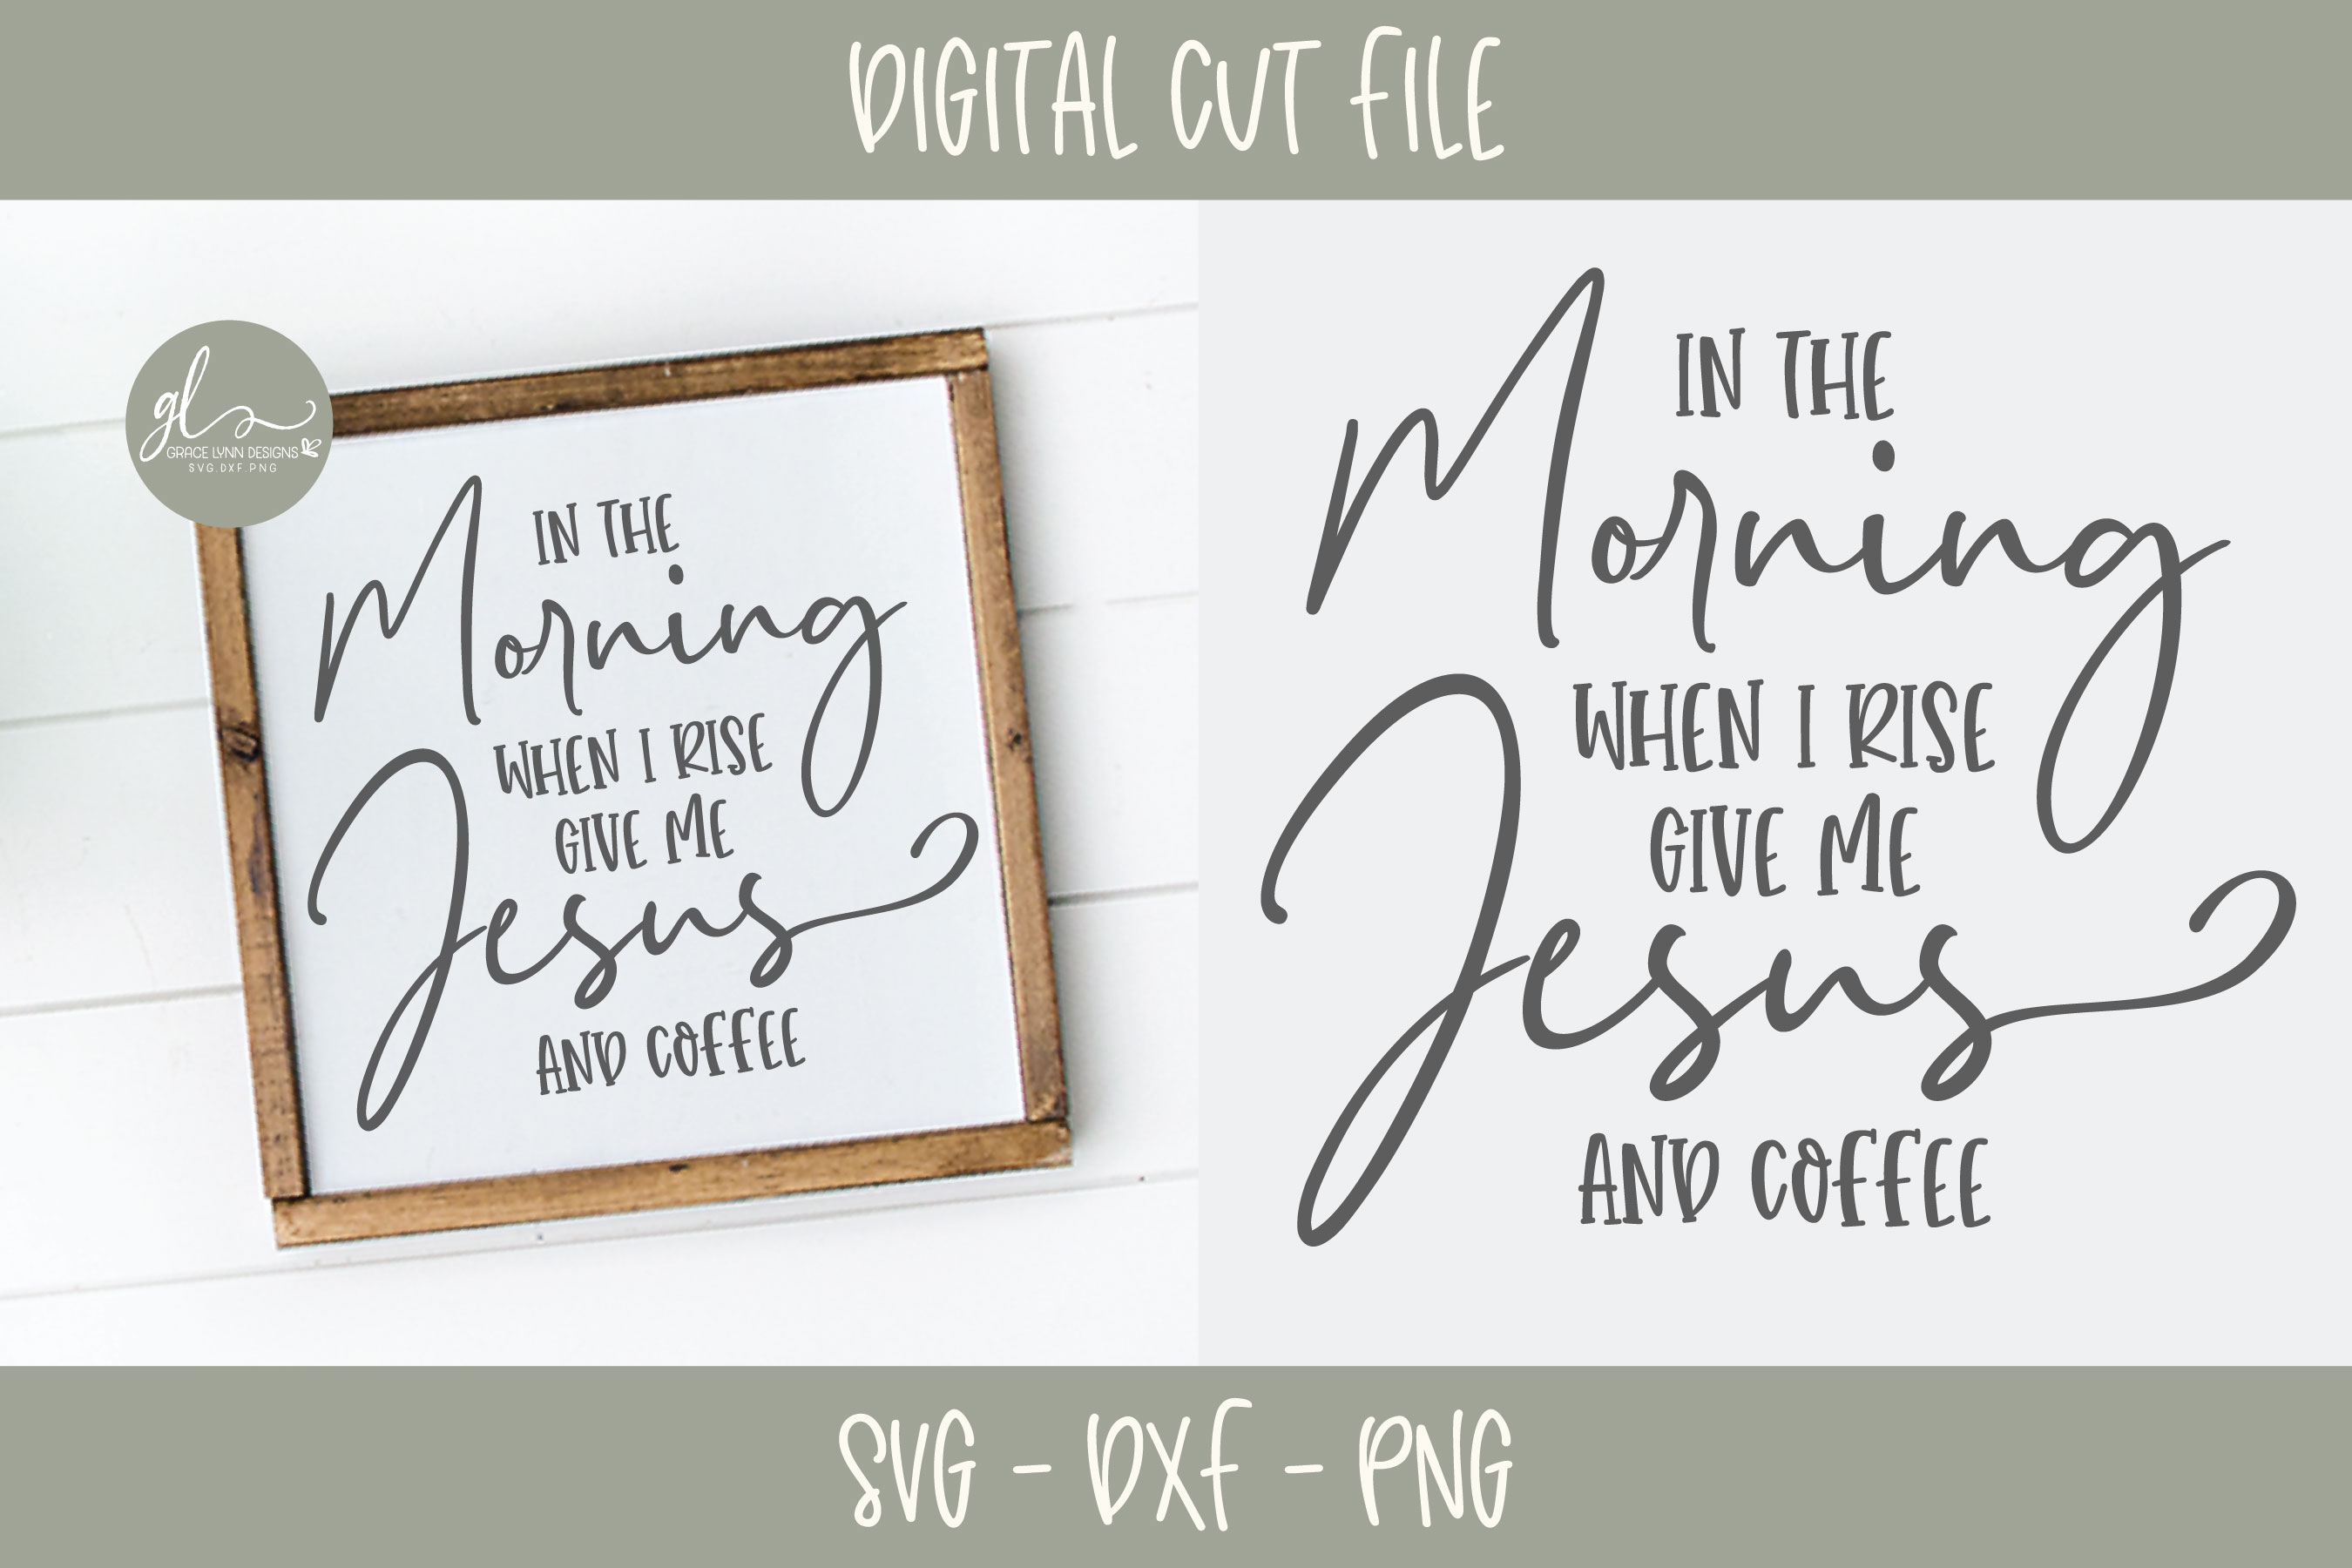 In The Morning When I Rise Give Me Jesus And Coffee - SVG example image 1